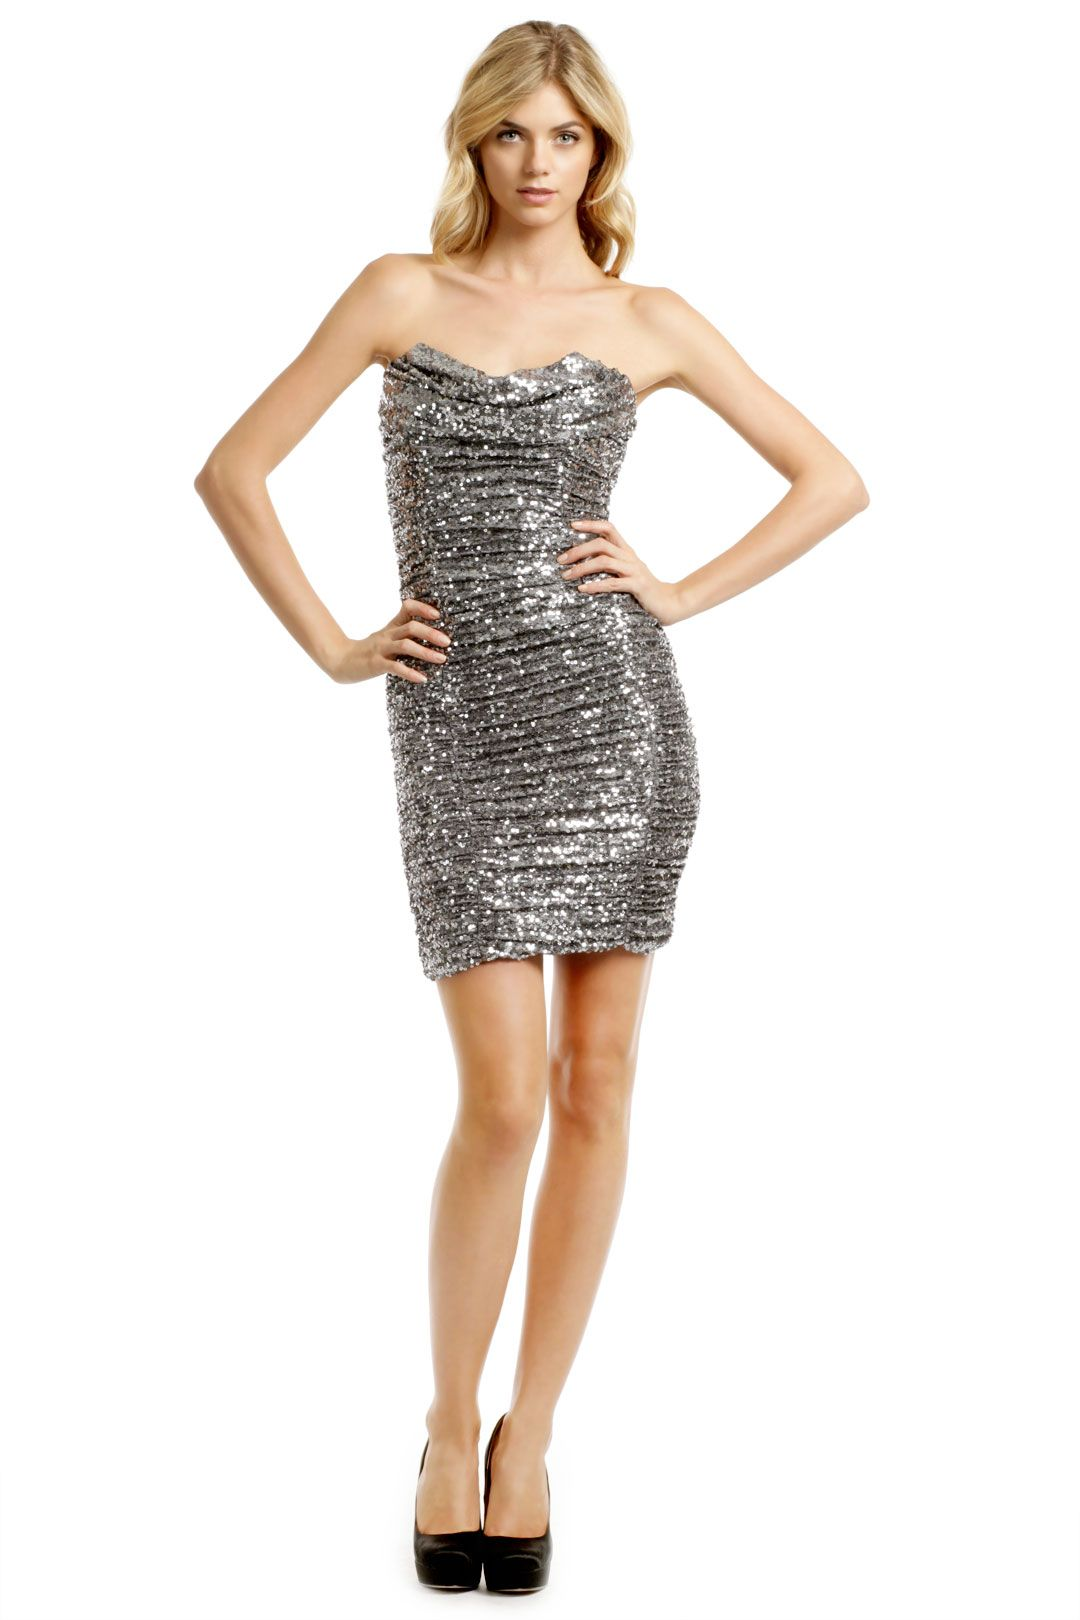 Silver Sequin Cocktail Dress rent the runway don't know